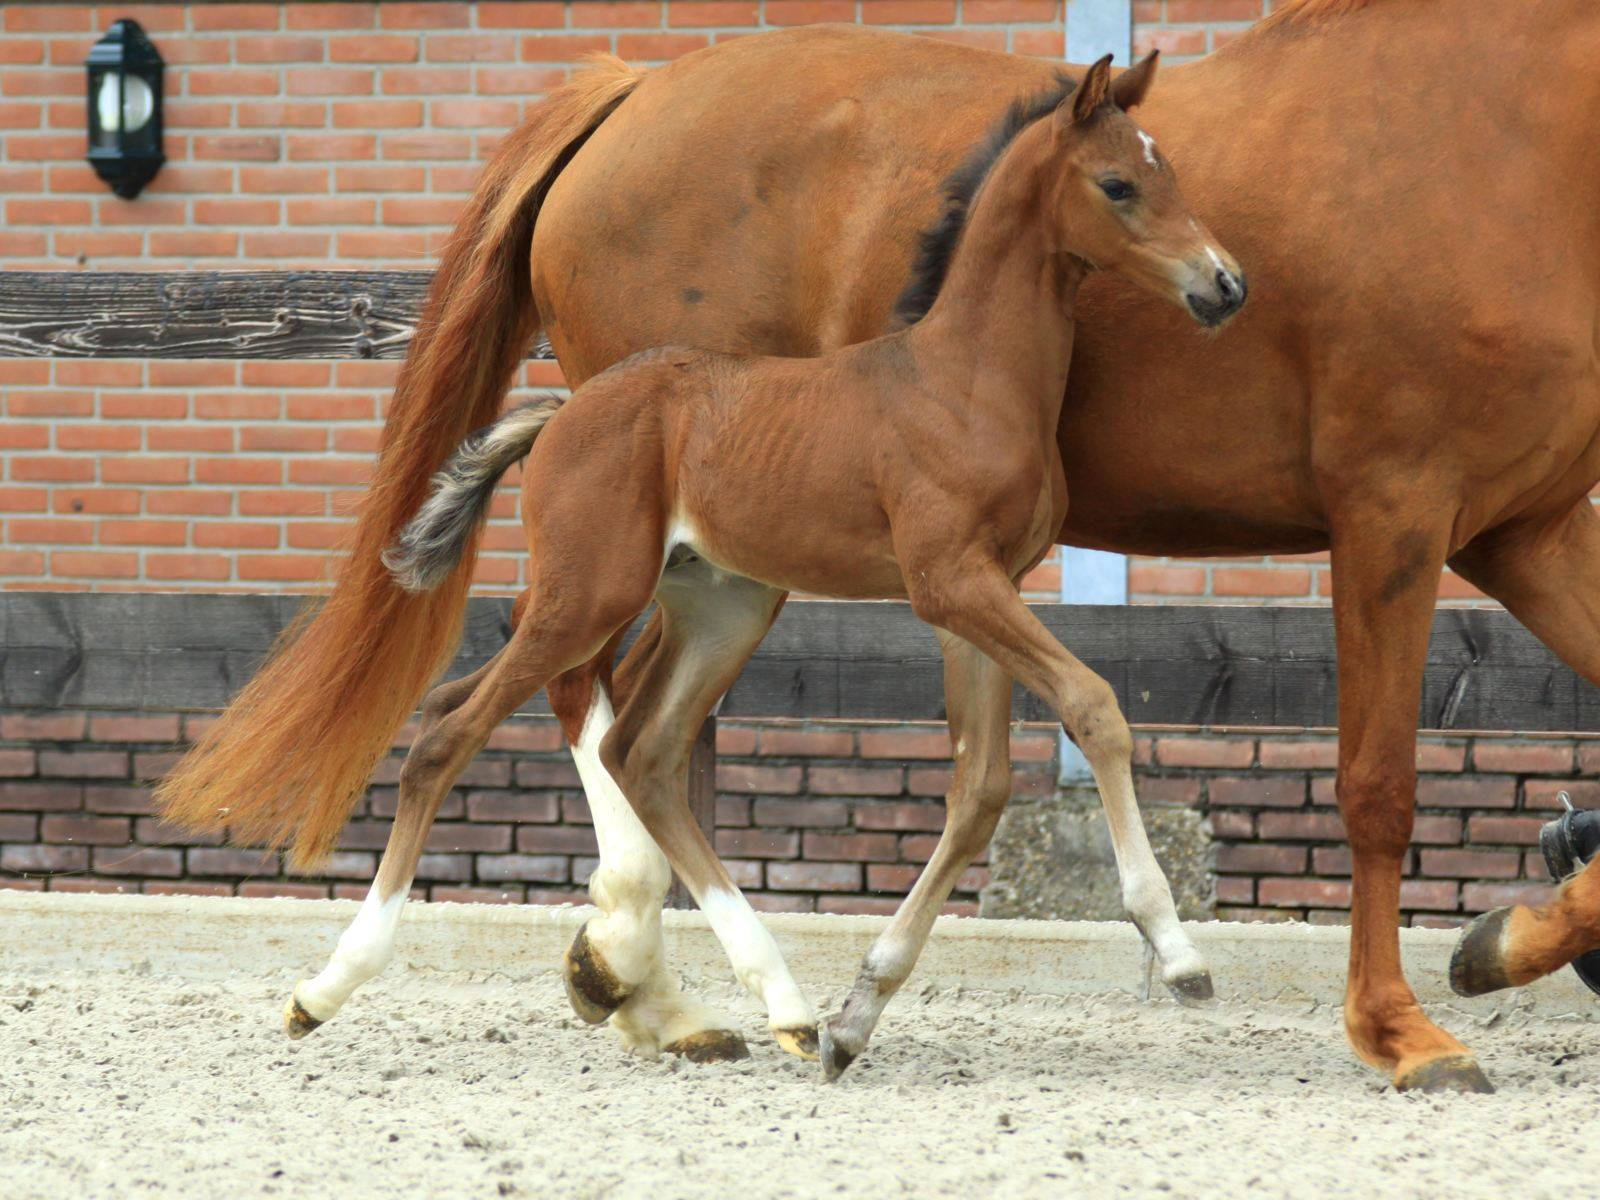 Foal and Young Horse by Glocks Zonik for Sale